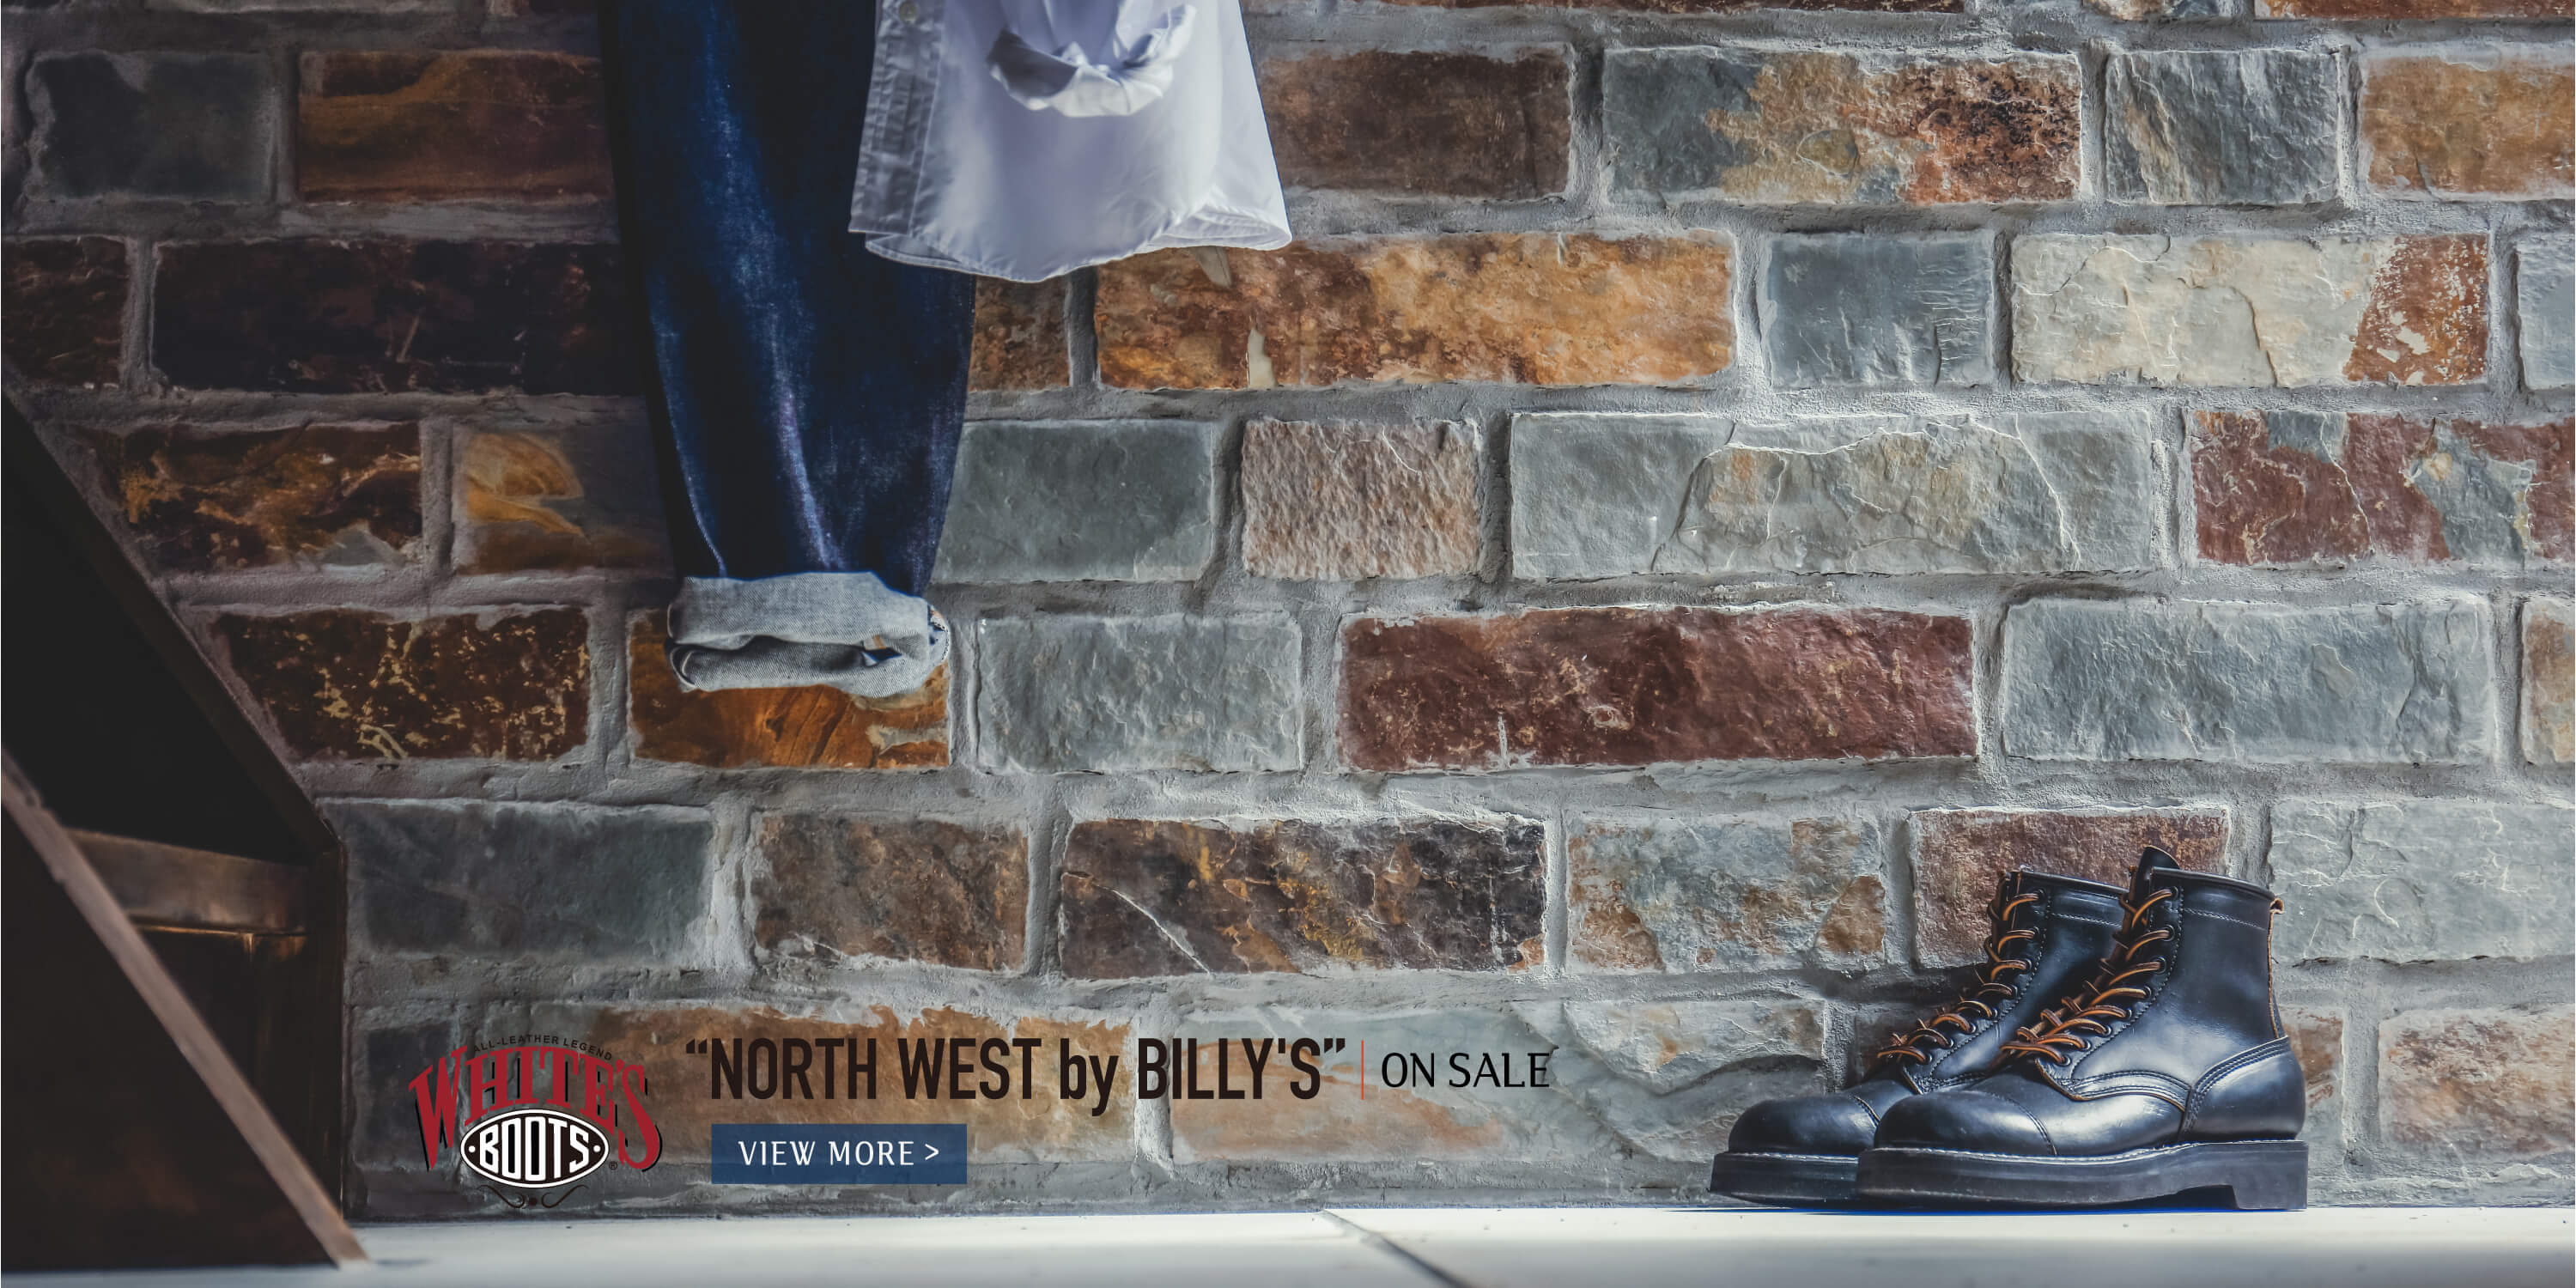 WHITE'S BOOTS NORTH WEST by BILLY'S